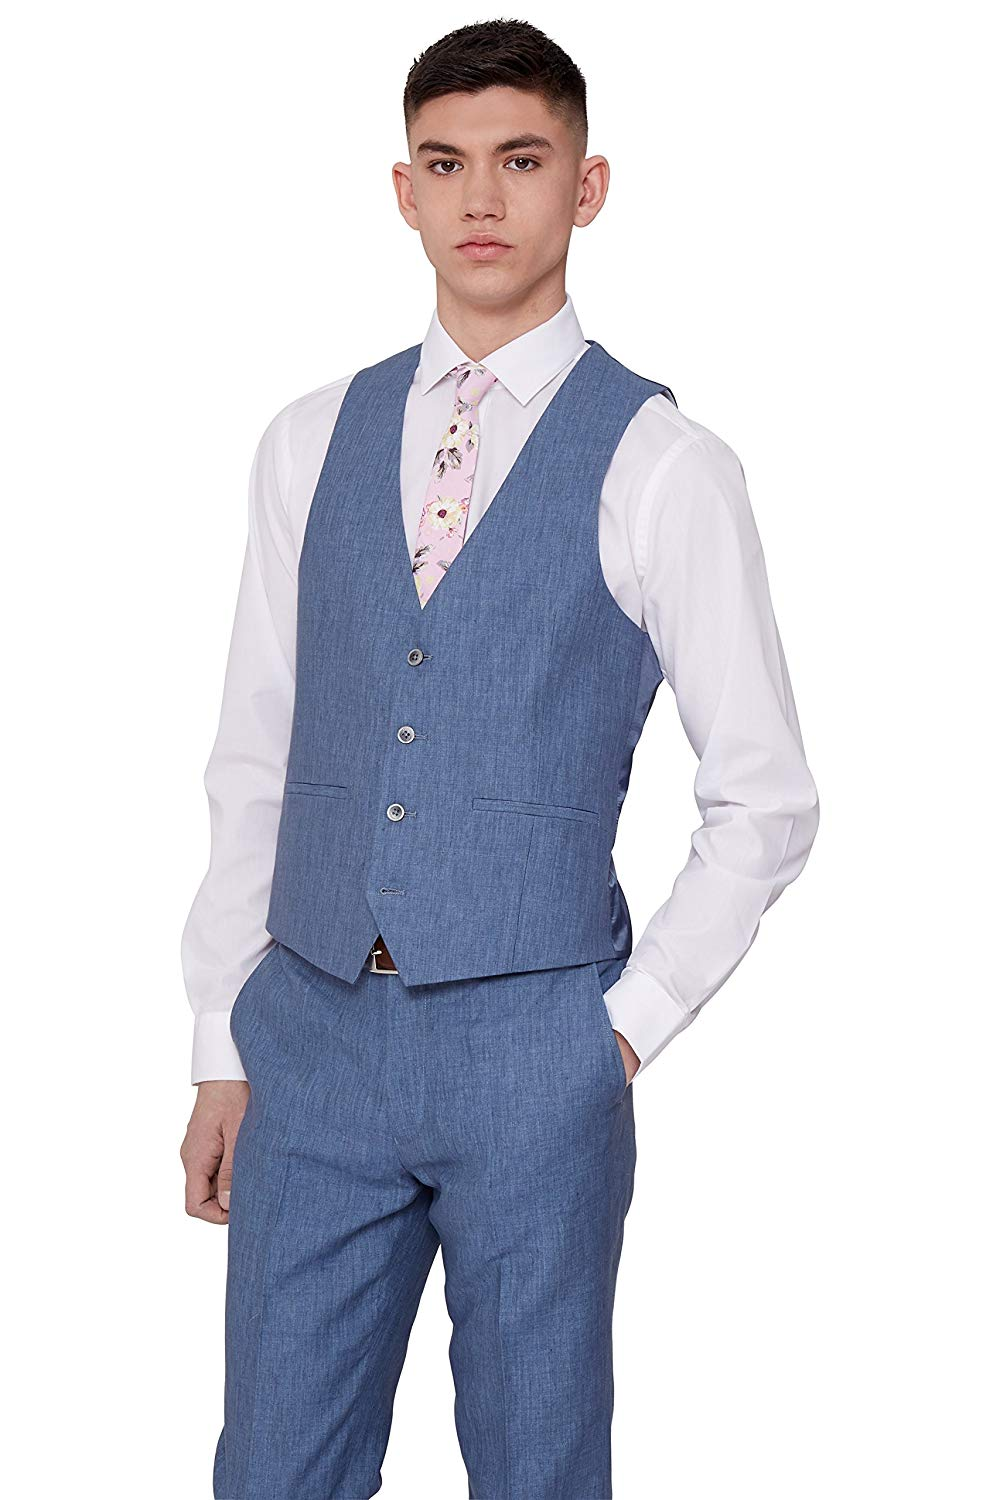 Cheap Buy Linen Suit, find Buy Linen Suit deals on line at Alibaba.com